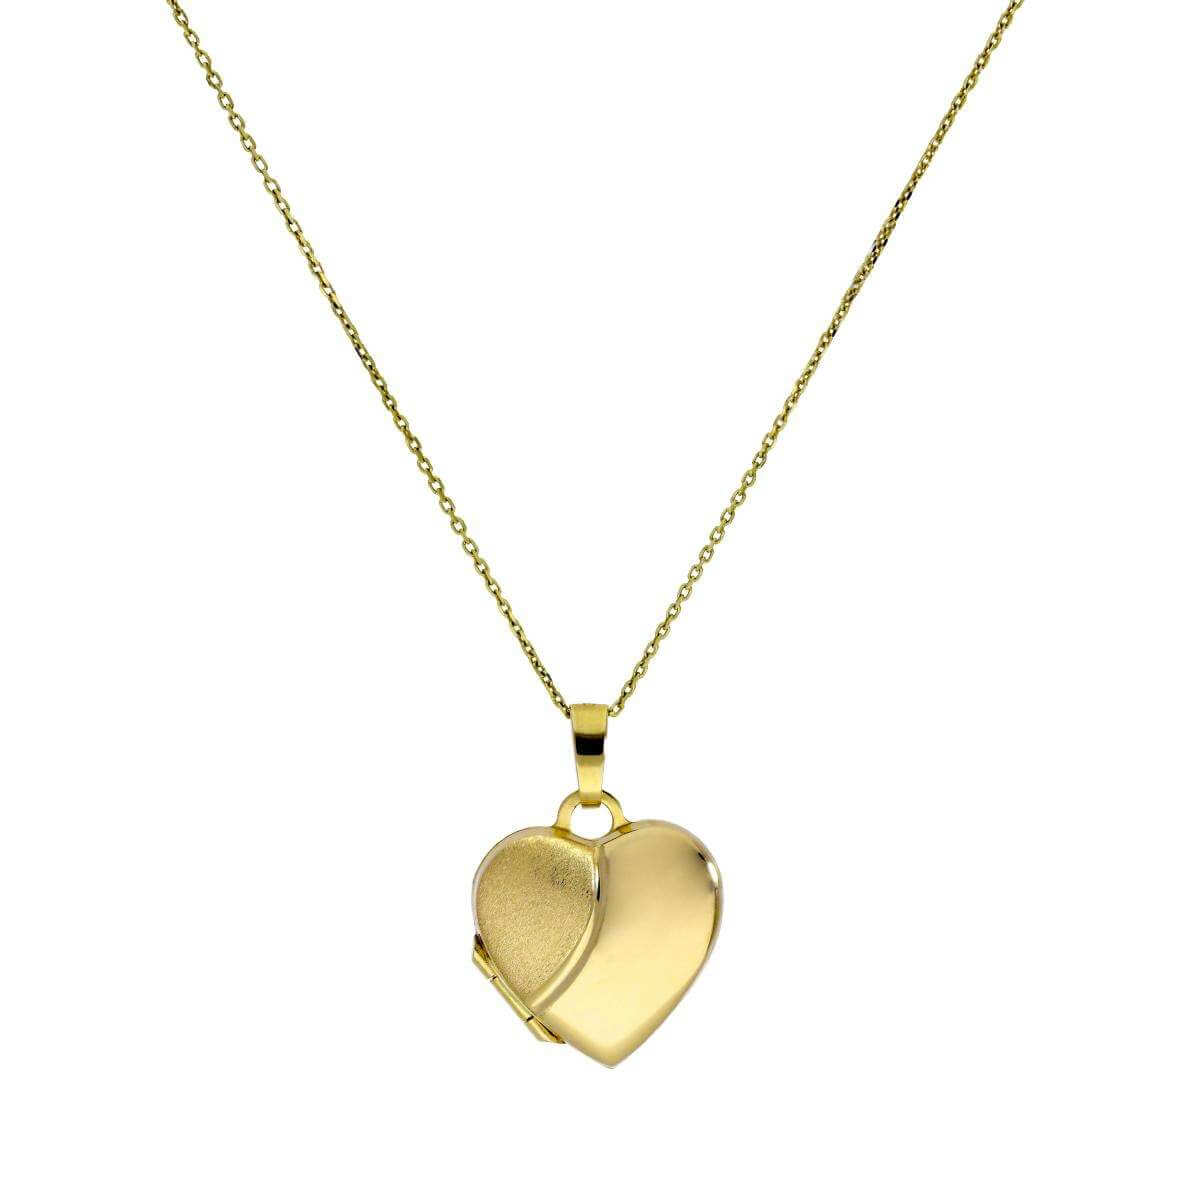 9ct Gold Engravable Two Tone Matt & Polished Heart Locket on Chain 16-20 Inches